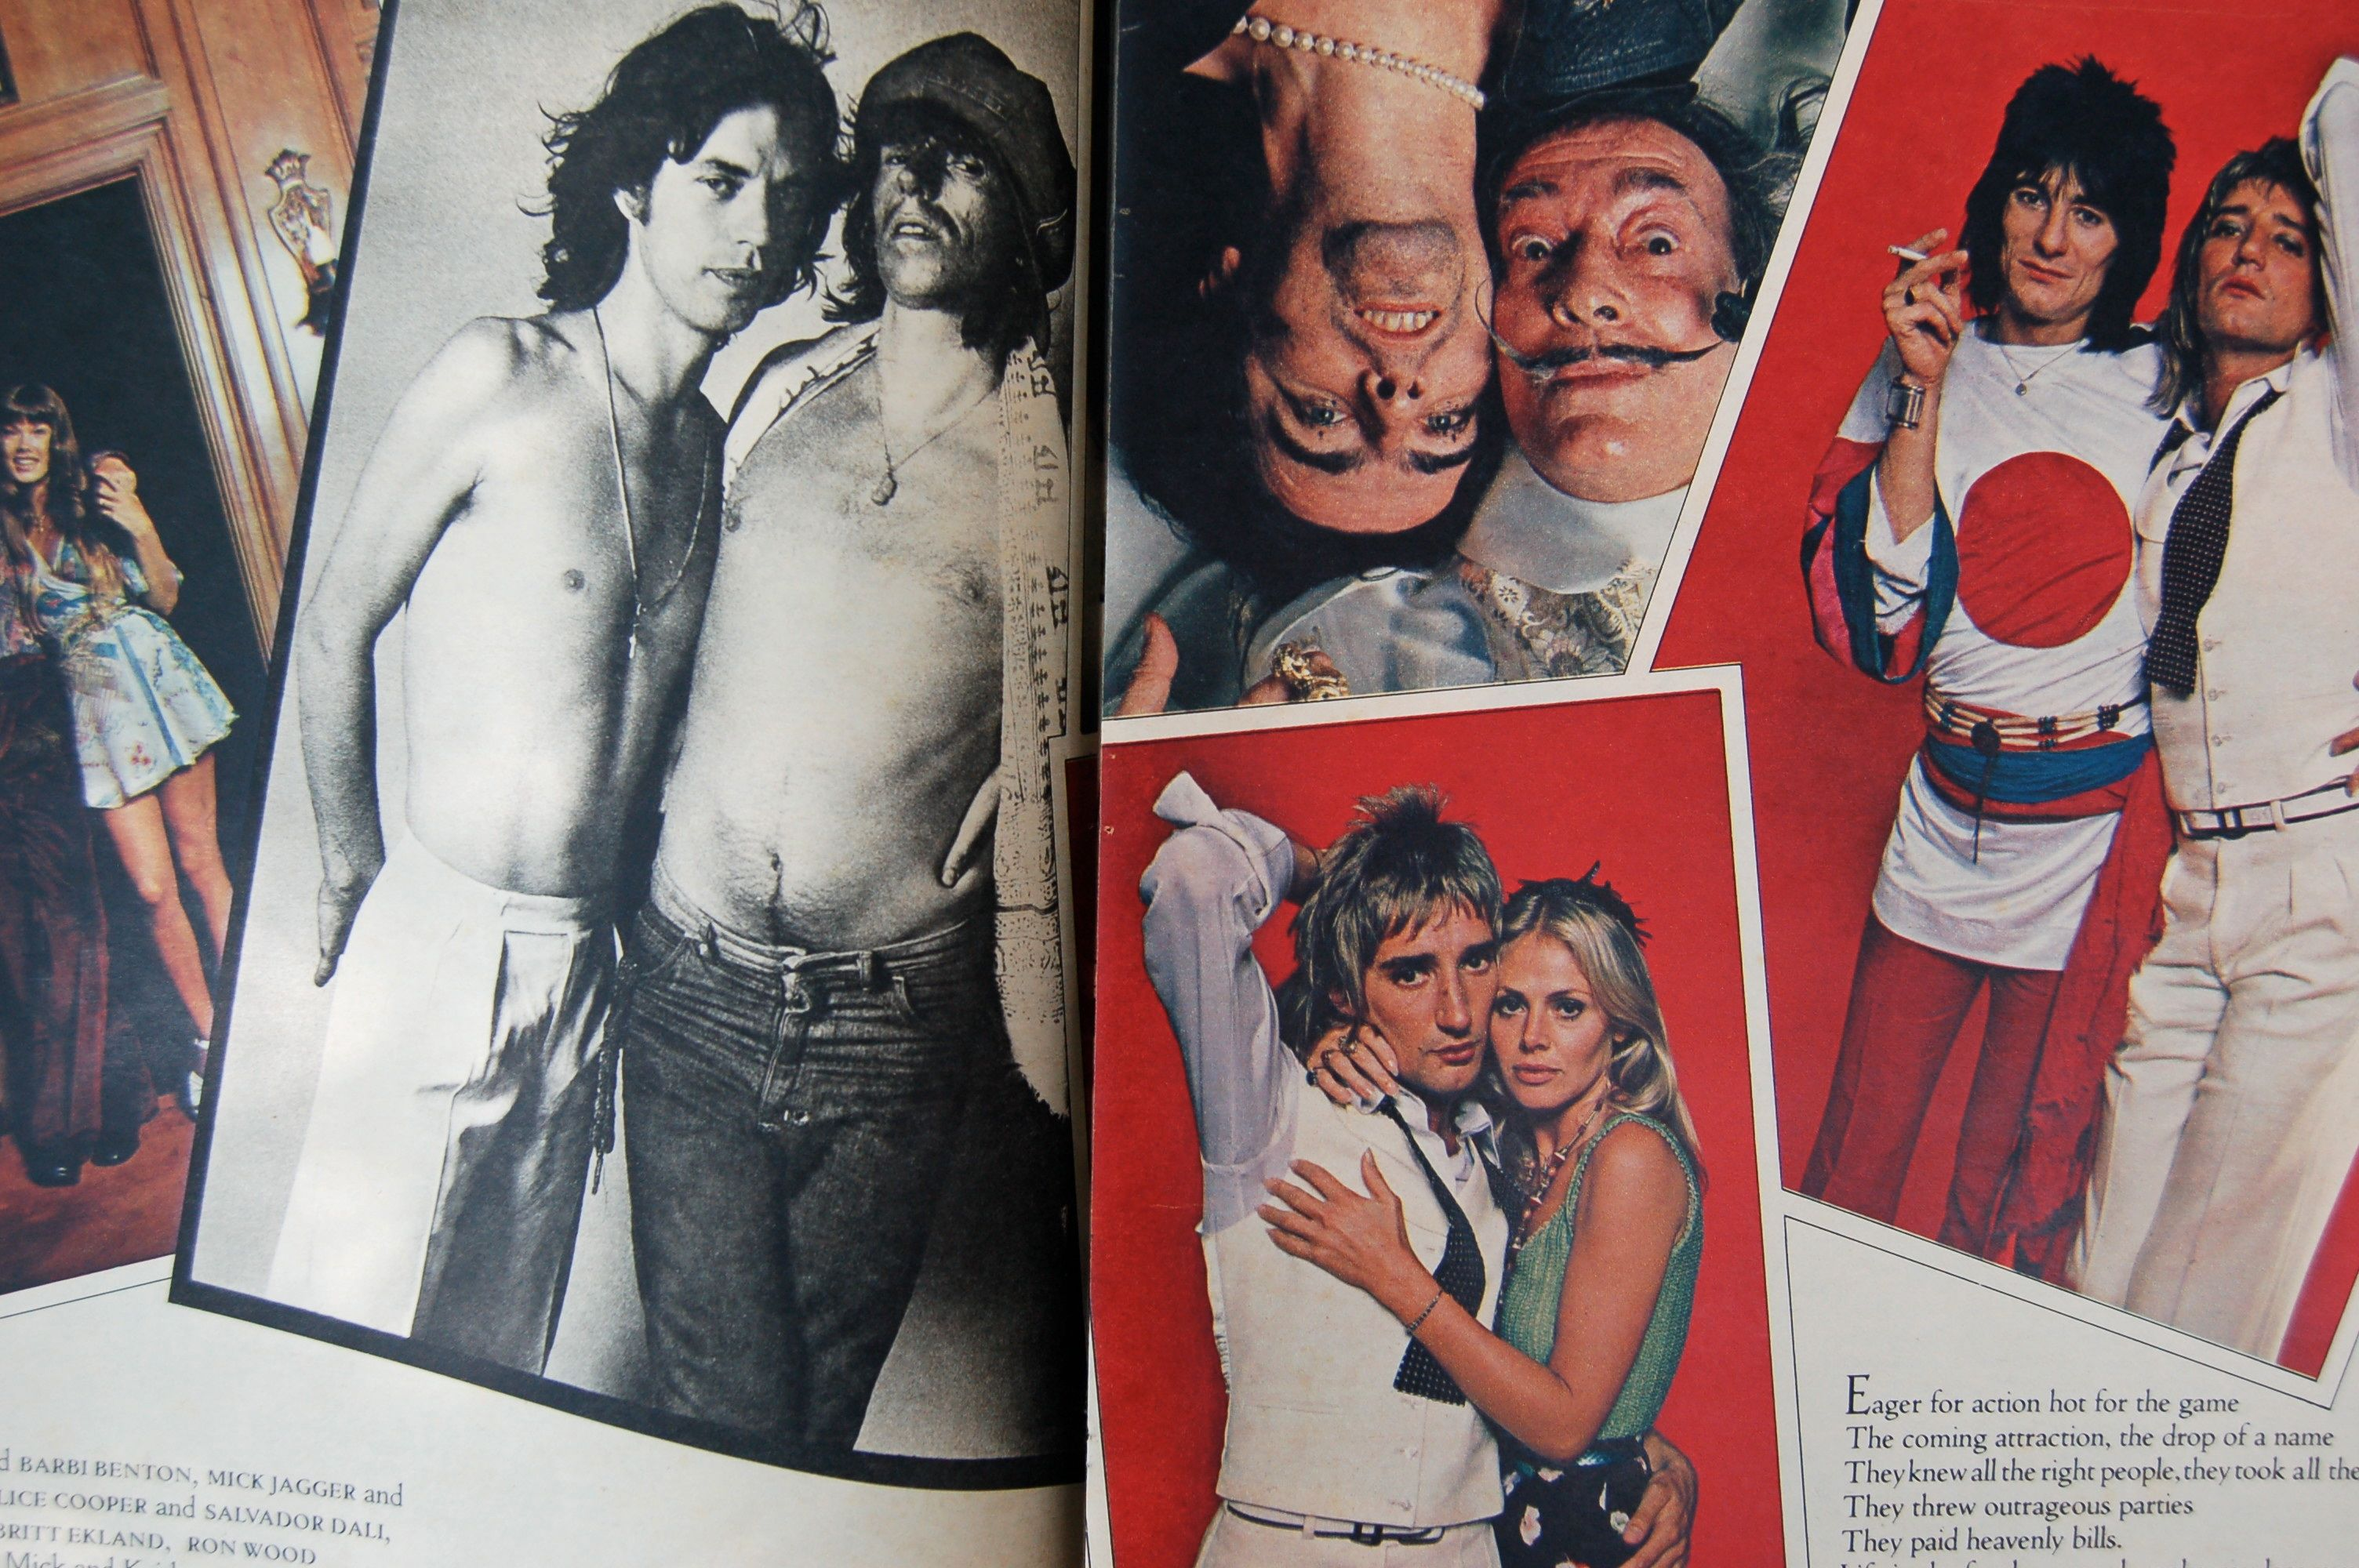 The 1977 Rolling Stone on our shelf: A Photo Essay